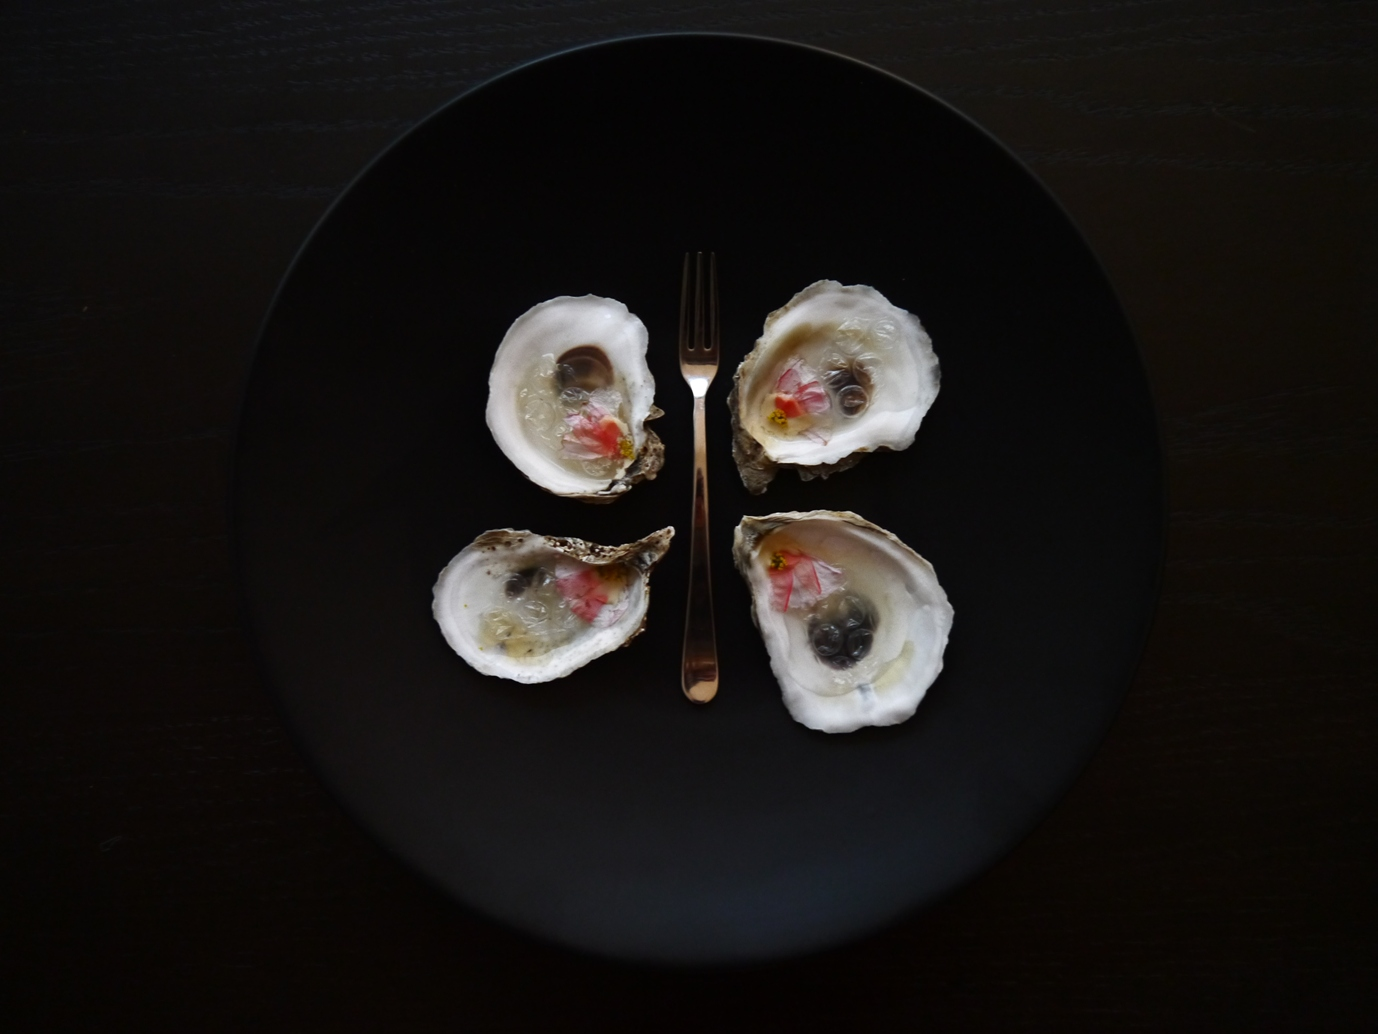 A p p e t i z e r    Kumamoto oyster on a half shell //  empty oyster with bubble wrap and shampoo      Mustard blossoms //  yellow wildflowers      Thai chili //  red pouch netting